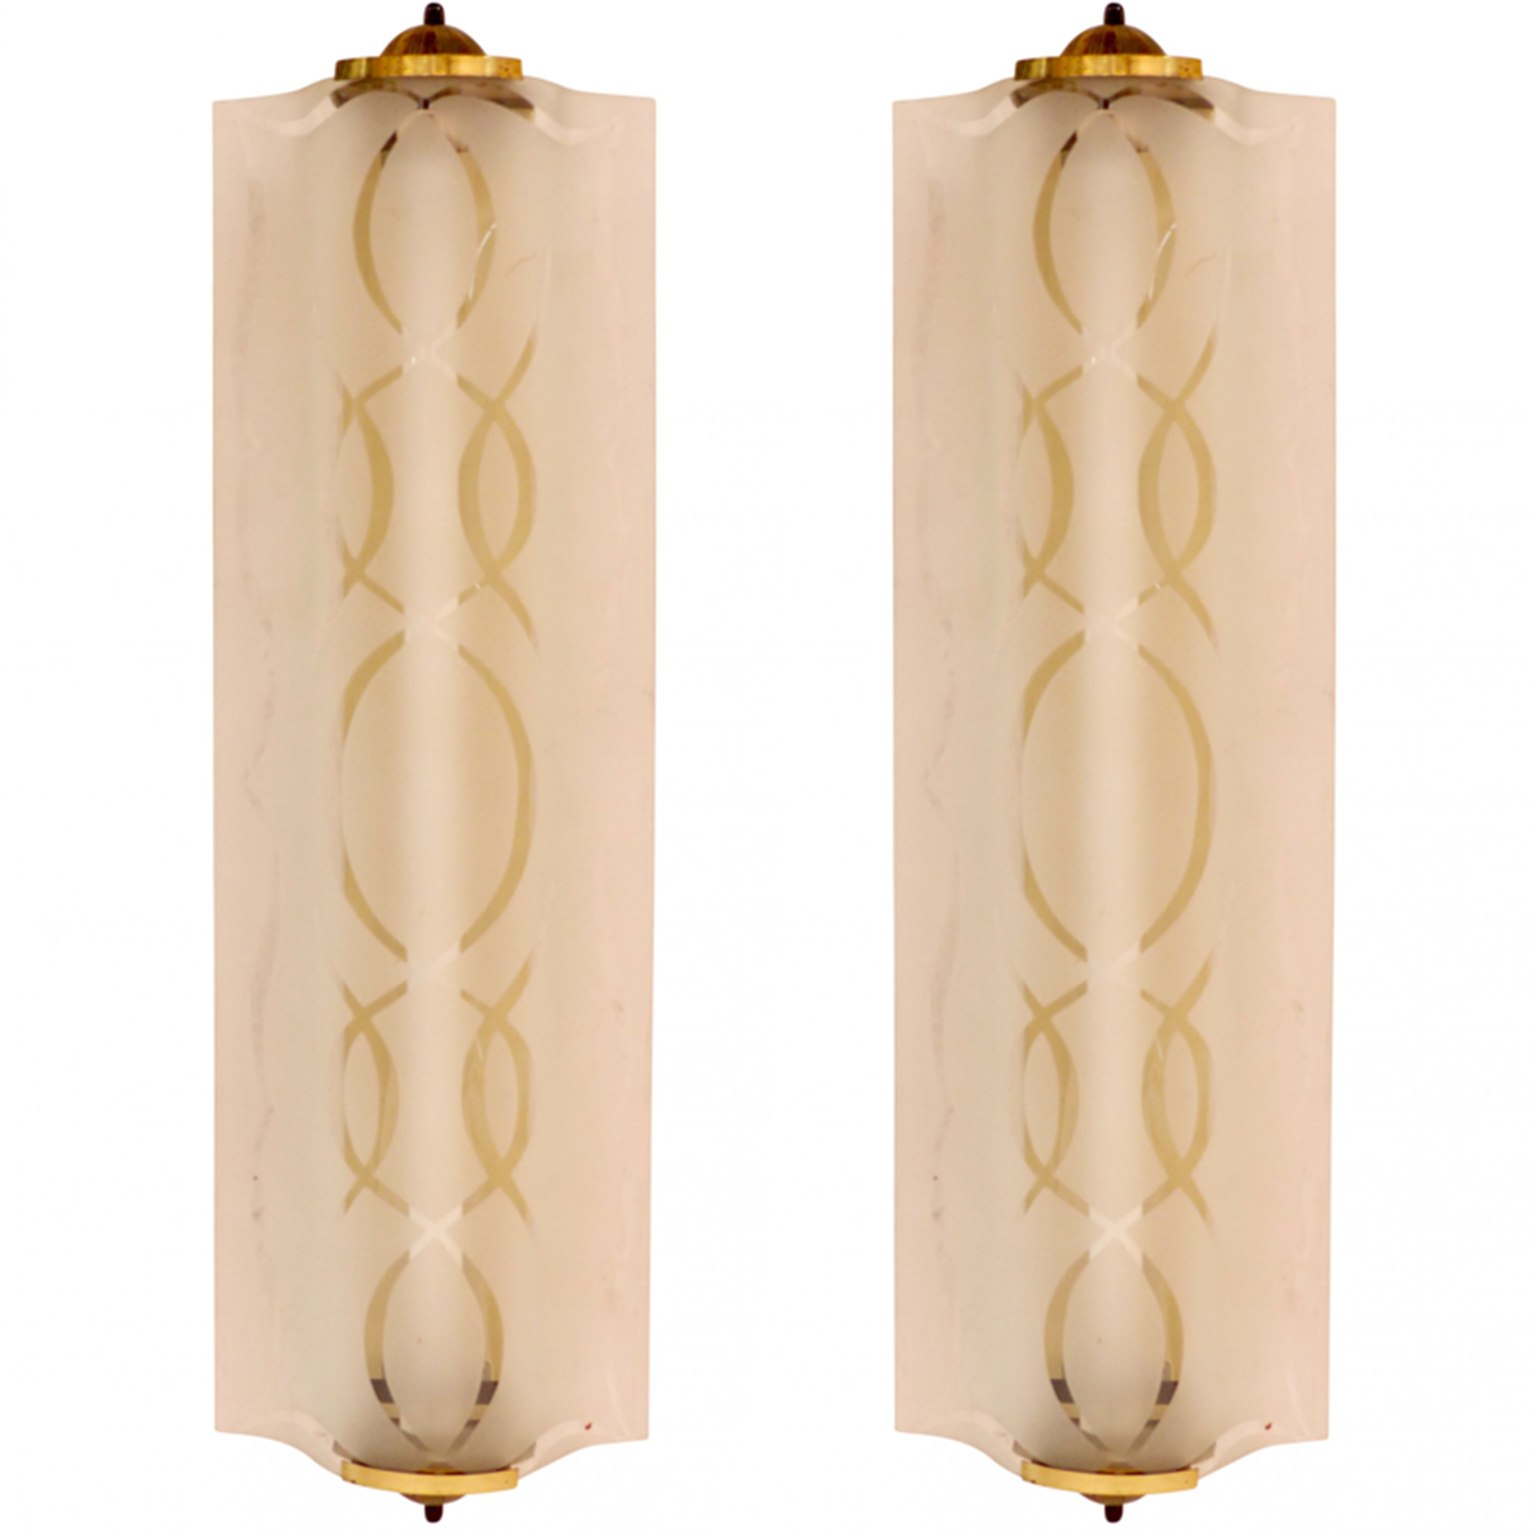 Art Deco elongated sconces with frosted glass and brass hardware.